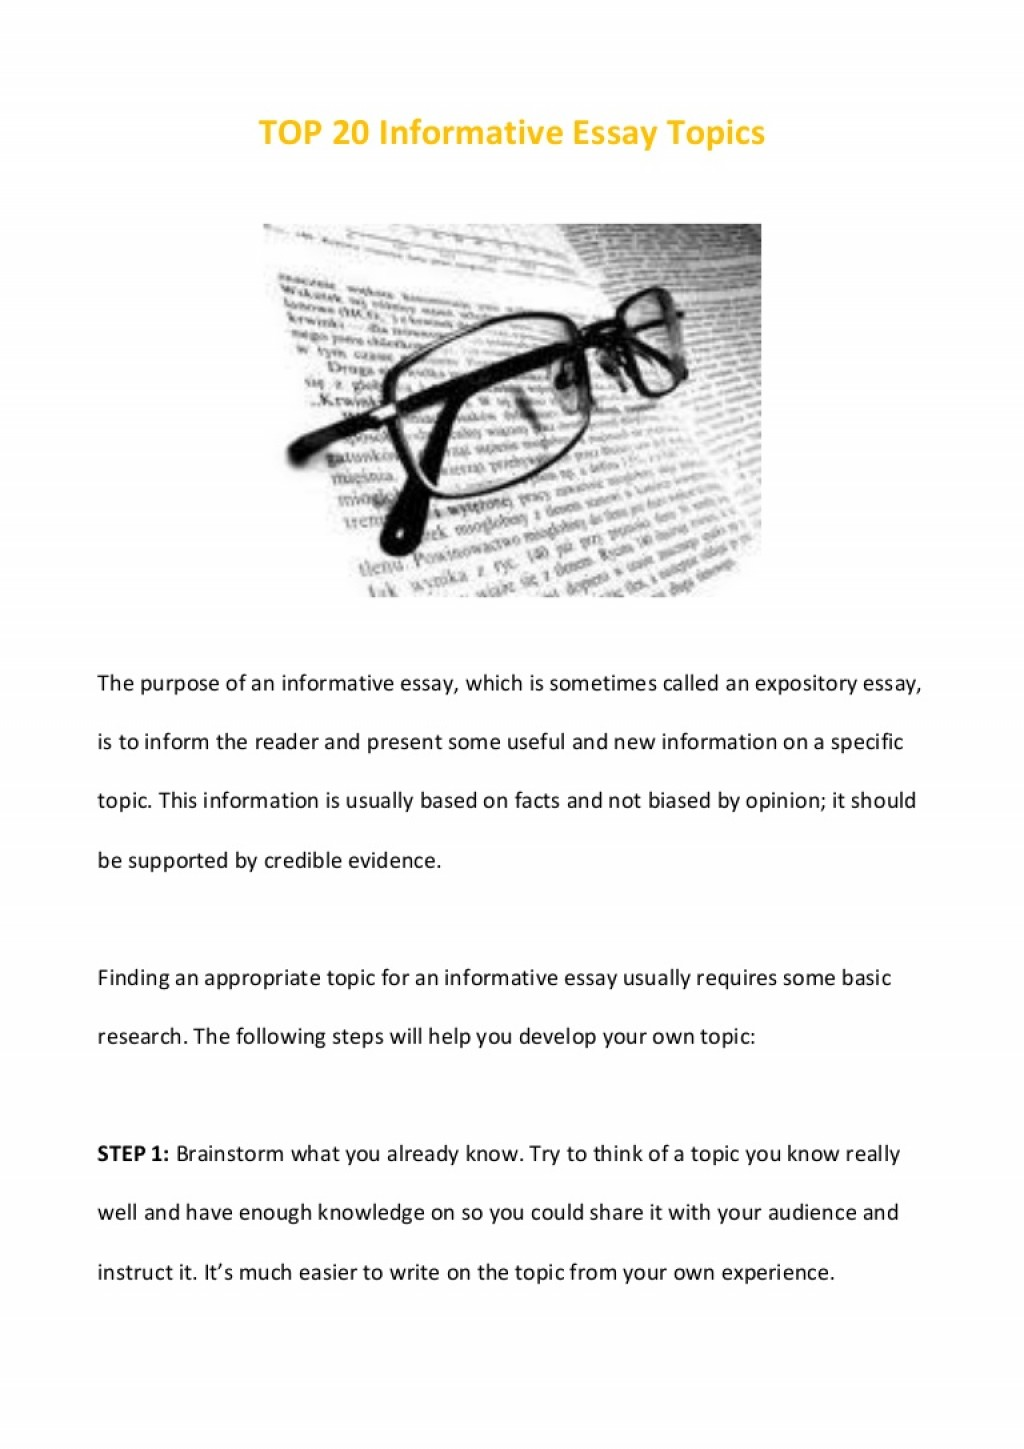 011 Essay Example Top20informativeessaytopics Phpapp02 Thumbnail Informative Remarkable Topics Expository For 5th Grade Paper College Prompts Middle School Large